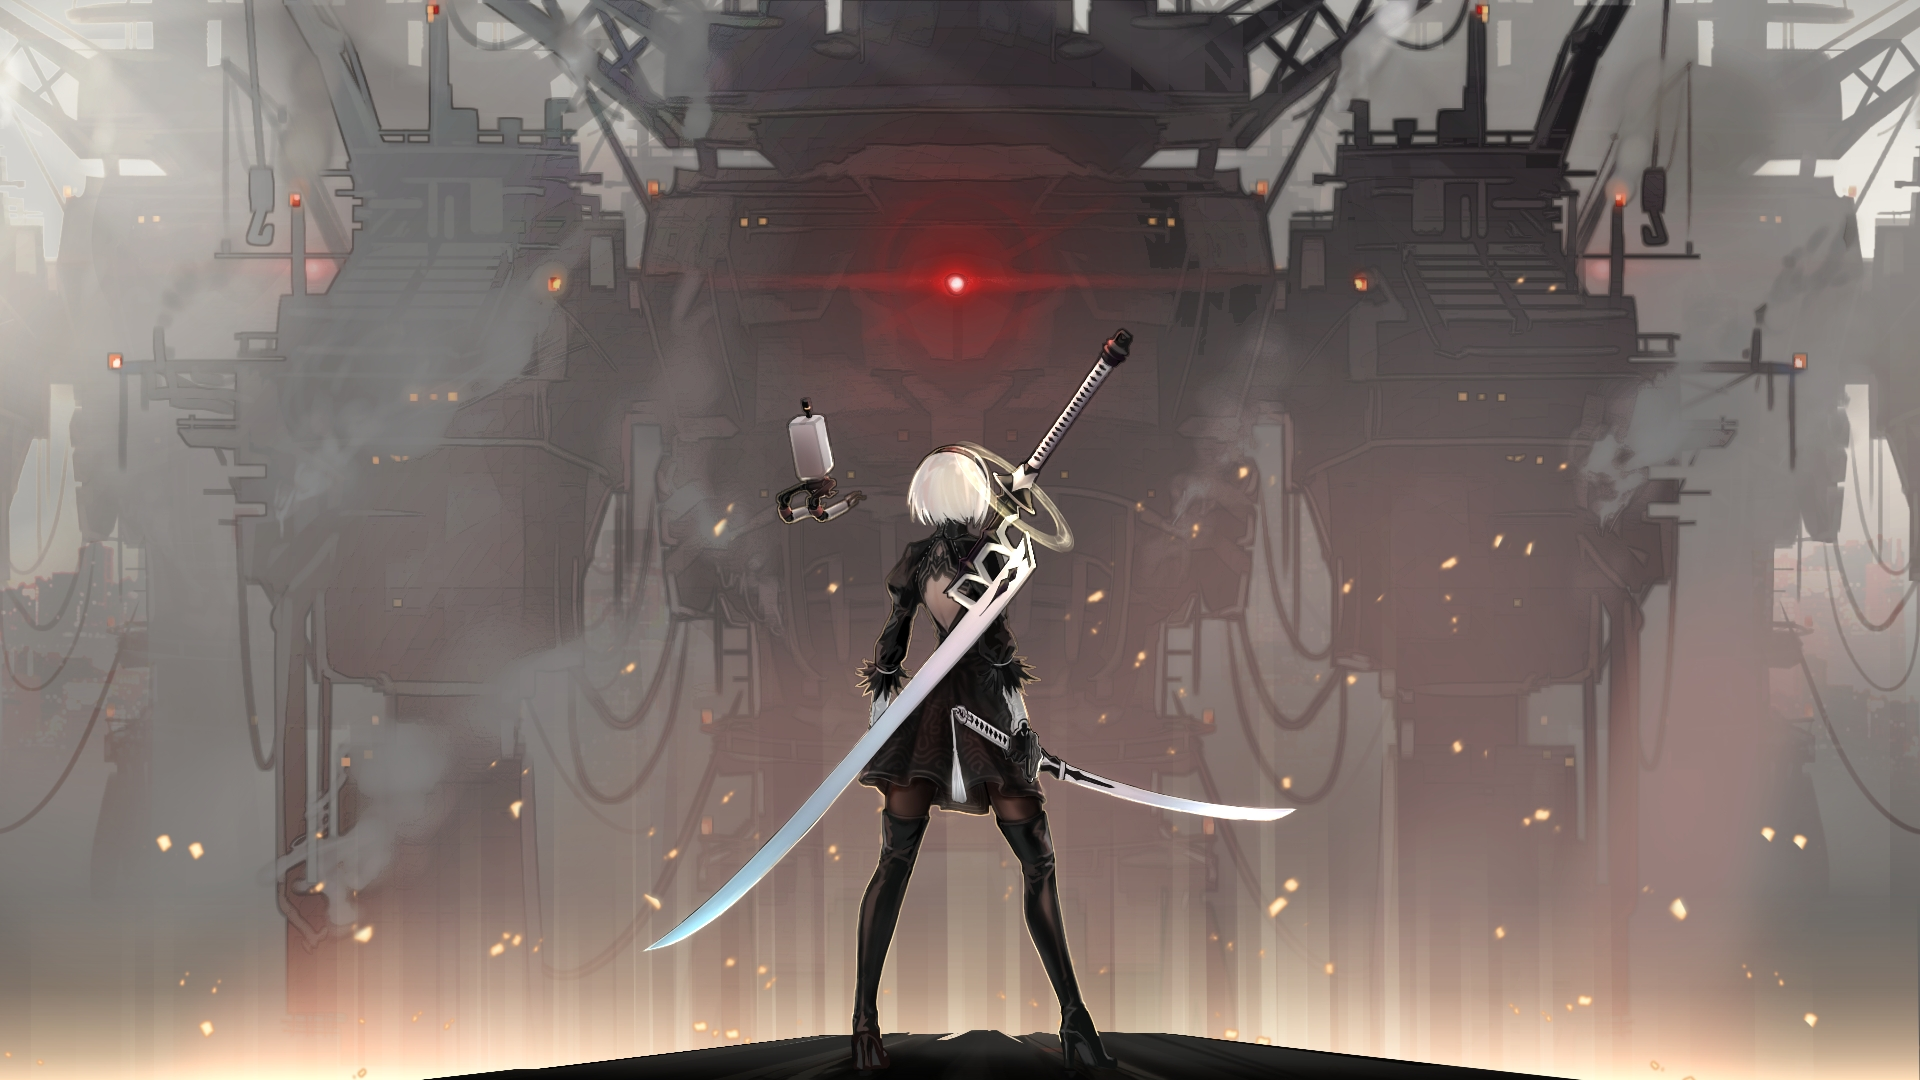 10 Best Nier Automata 1920X1080 Wallpaper FULL HD 1080p For PC Background